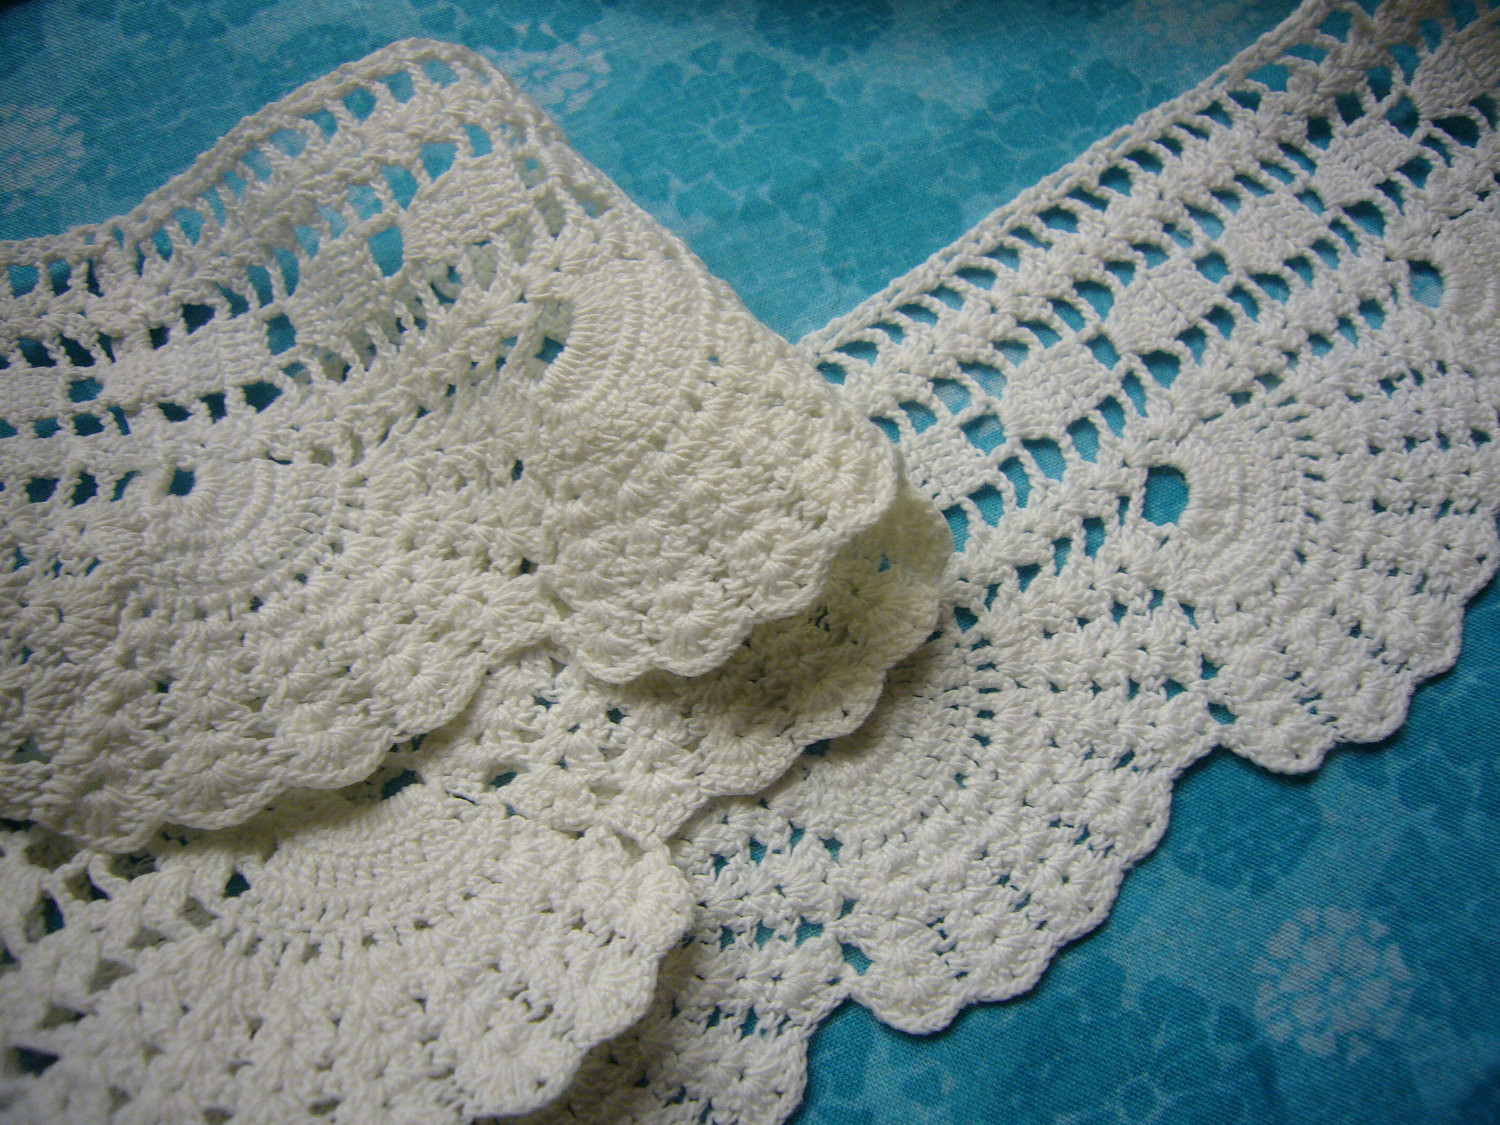 Vintage SeaShell pattern hand crochet lace trim for sewing